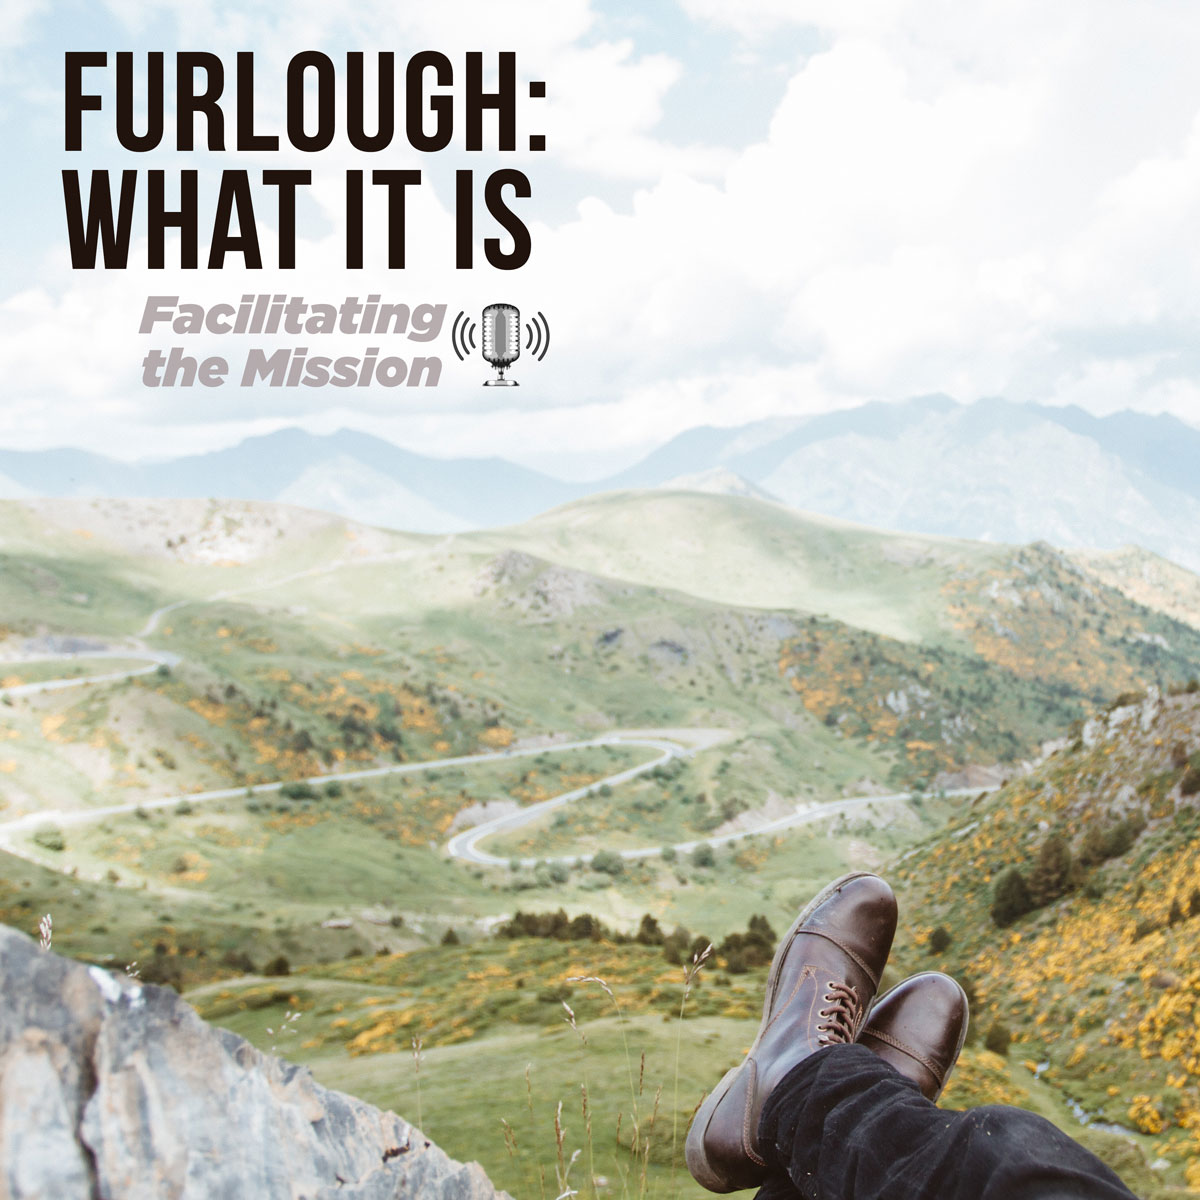 Furlough: What It Is